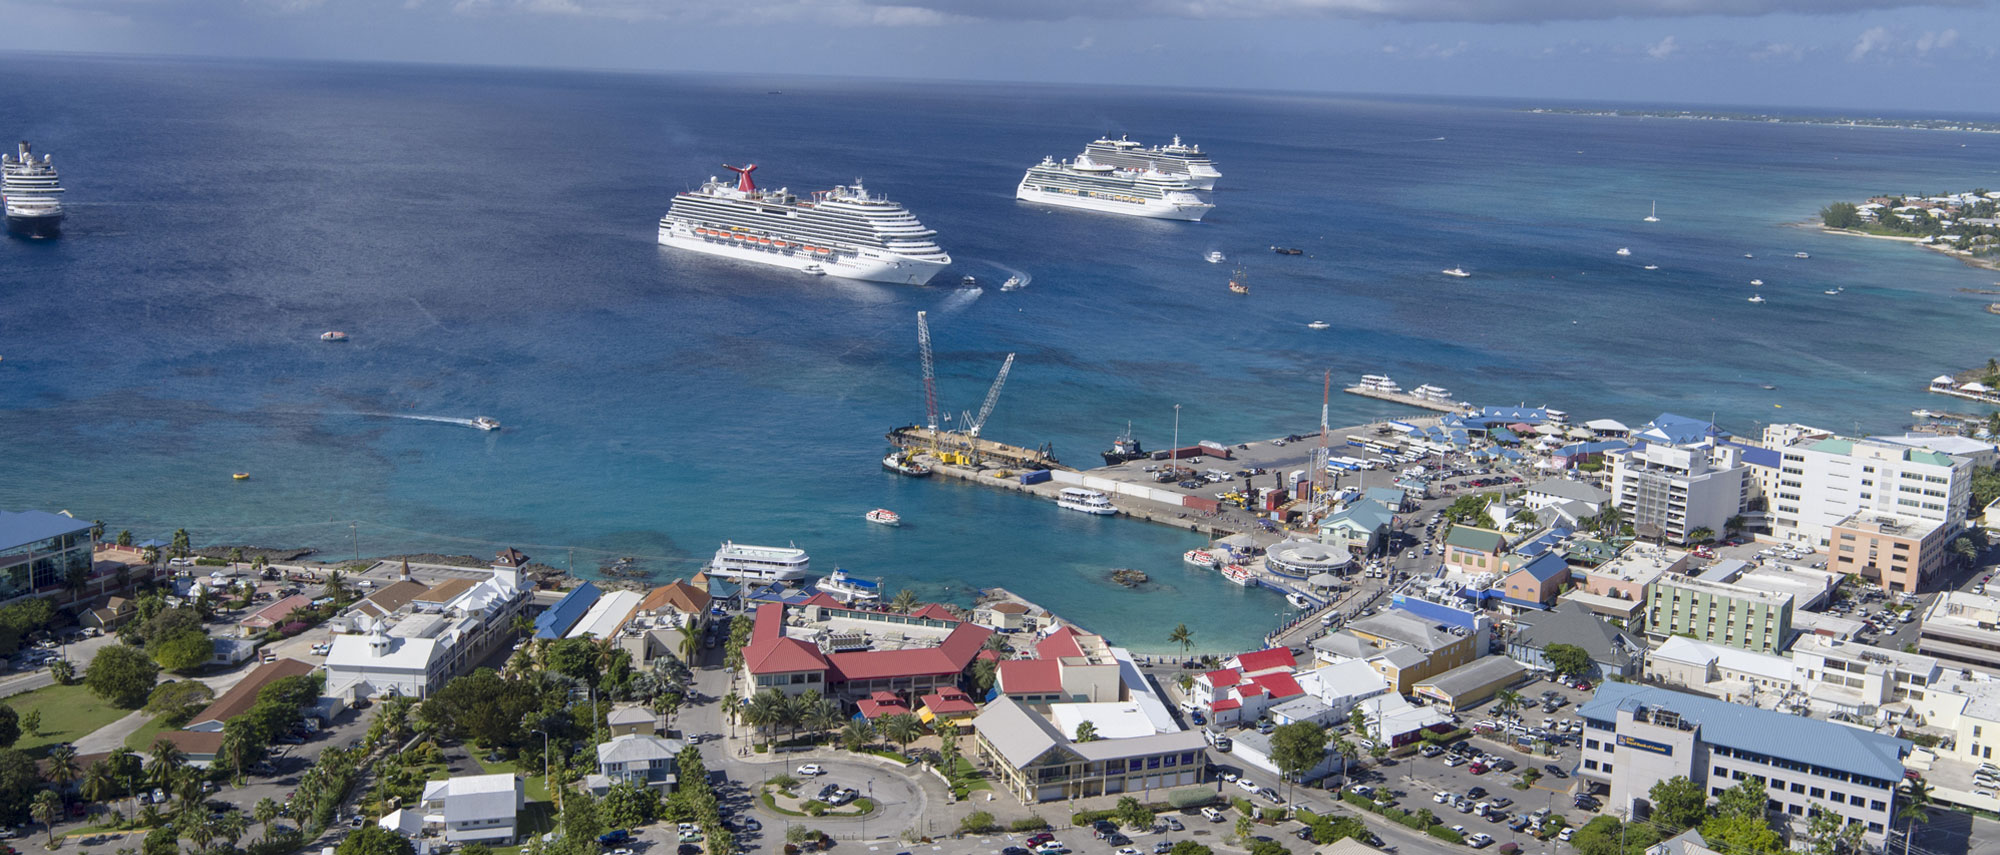 Cruise Ships in the port of George Town, Cayman Islands